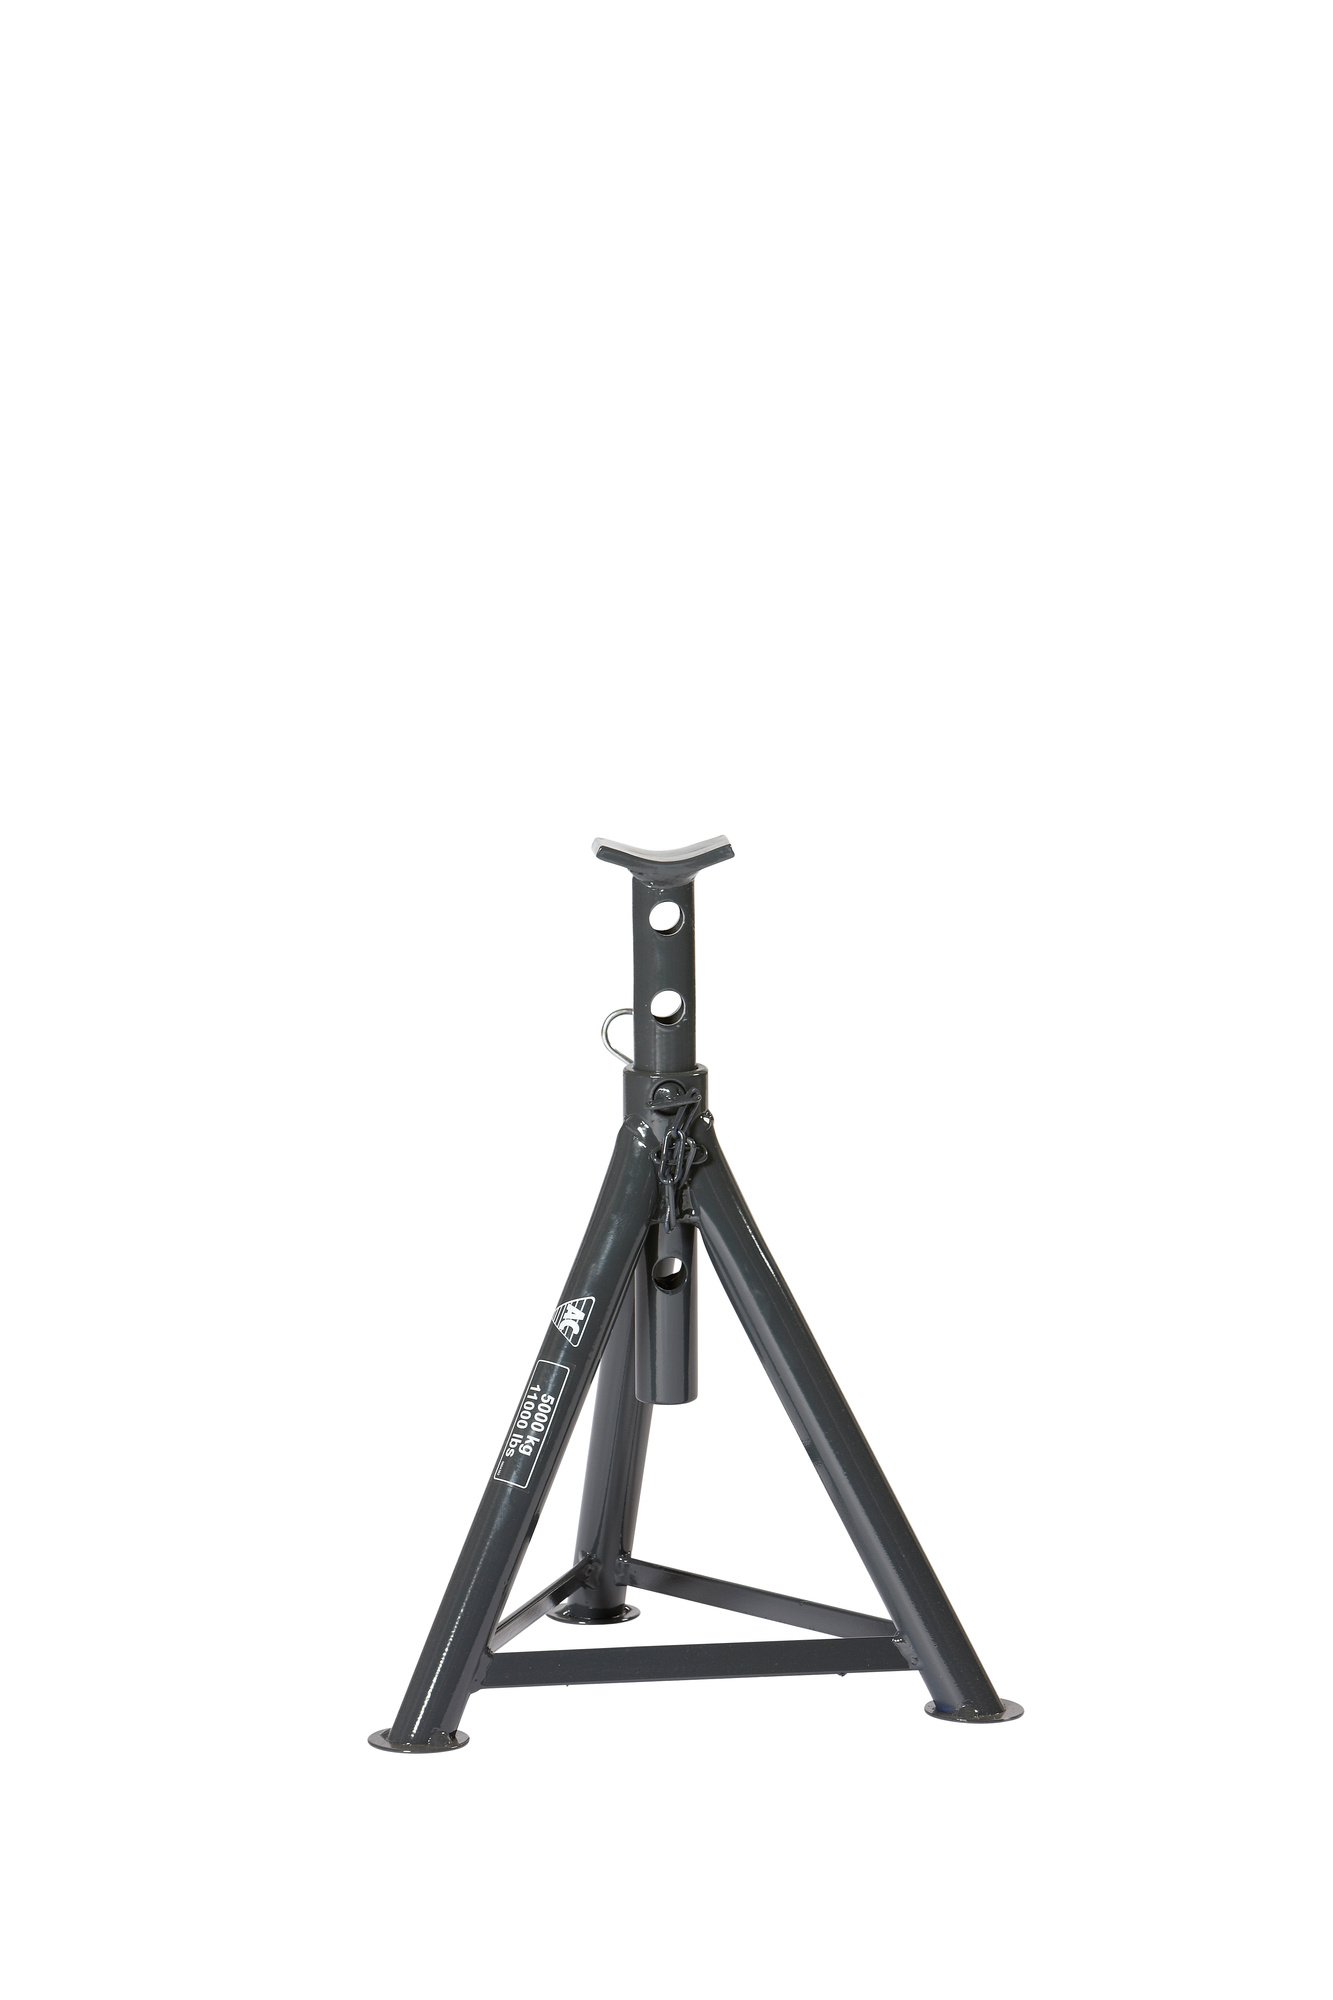 AXLE STAND AB5